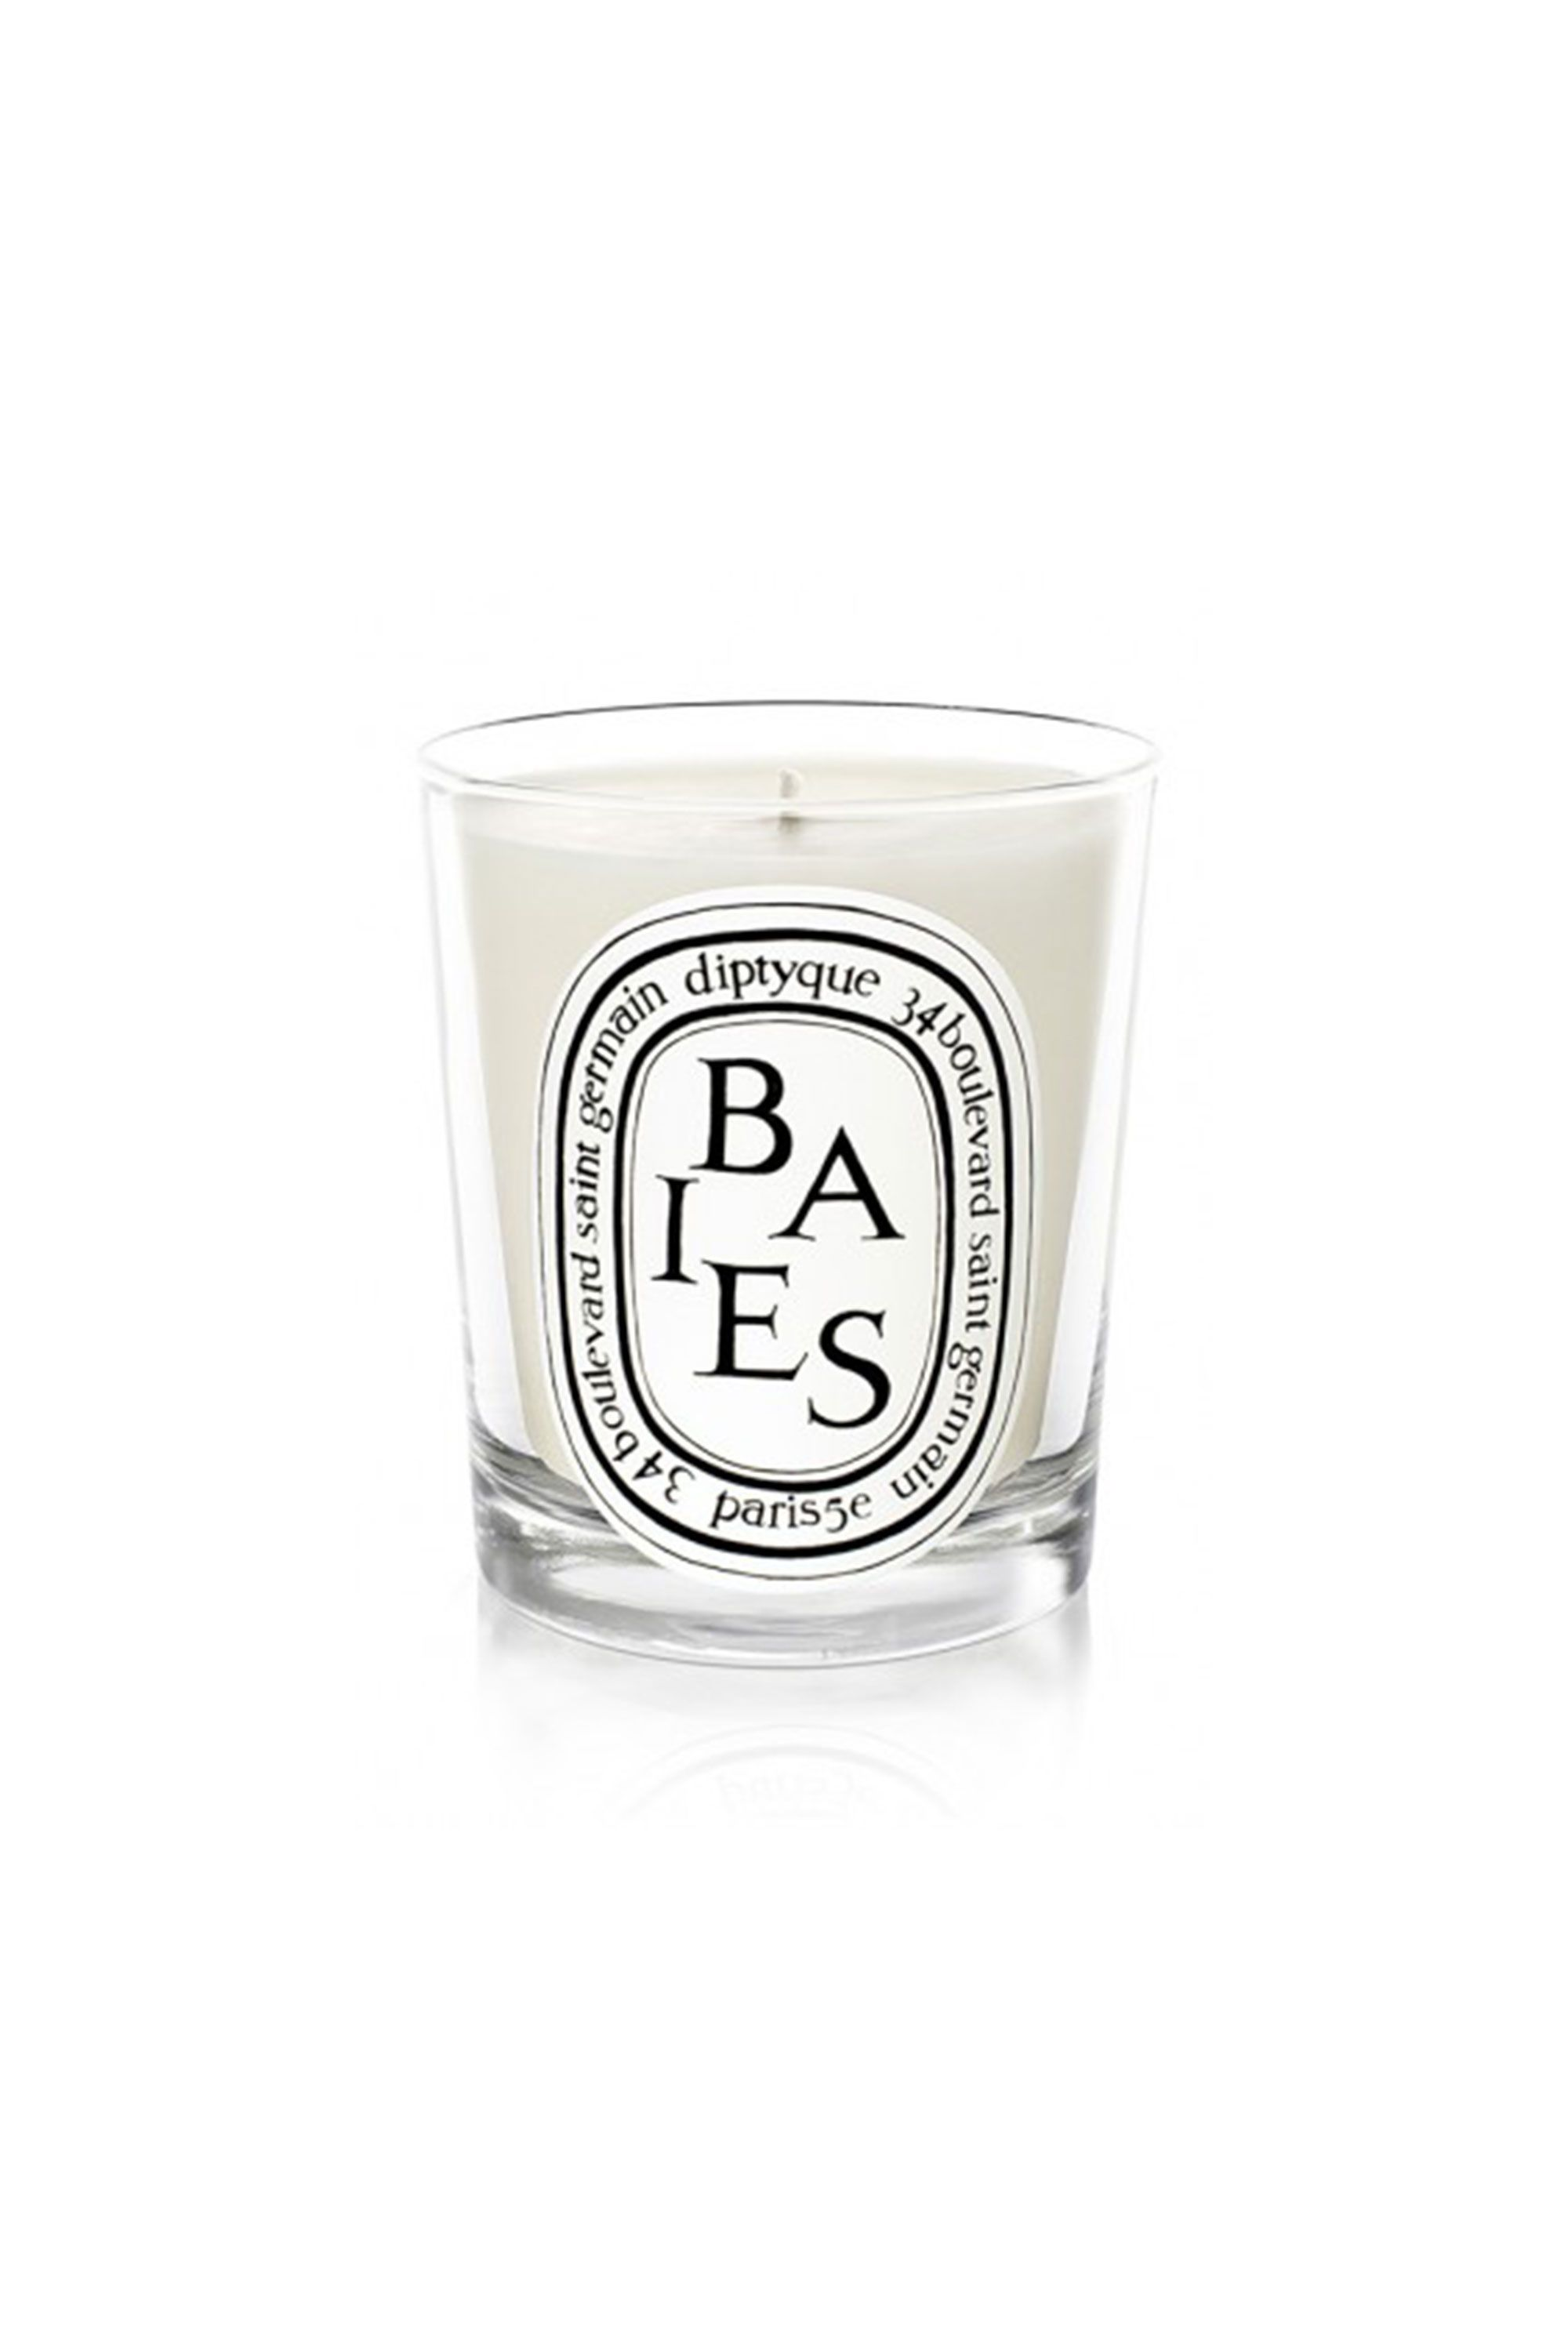 "<p>""Everyone <em data-redactor-tag=""em"" data-verified=""redactor"">loves</em> Diptyque, and the irresistible yet recognizable scent makes this little candle the ideal gift for my coworkers. Plus, you can reuse your empties as holders for Q-Tips and cotton balls."" <em data-redactor-tag=""em"" data-verified=""redactor"">$32, </em><a href=""http://www.diptyqueparis.com/home-fragrances/scented-luxury-candles-usa/standard-scented-candles-190g/baies-candle.html"" target=""_blank"" data-tracking-id=""recirc-text-link""><em data-redactor-tag=""em"" data-verified=""redactor"">diptyque.com</em></a></p>"